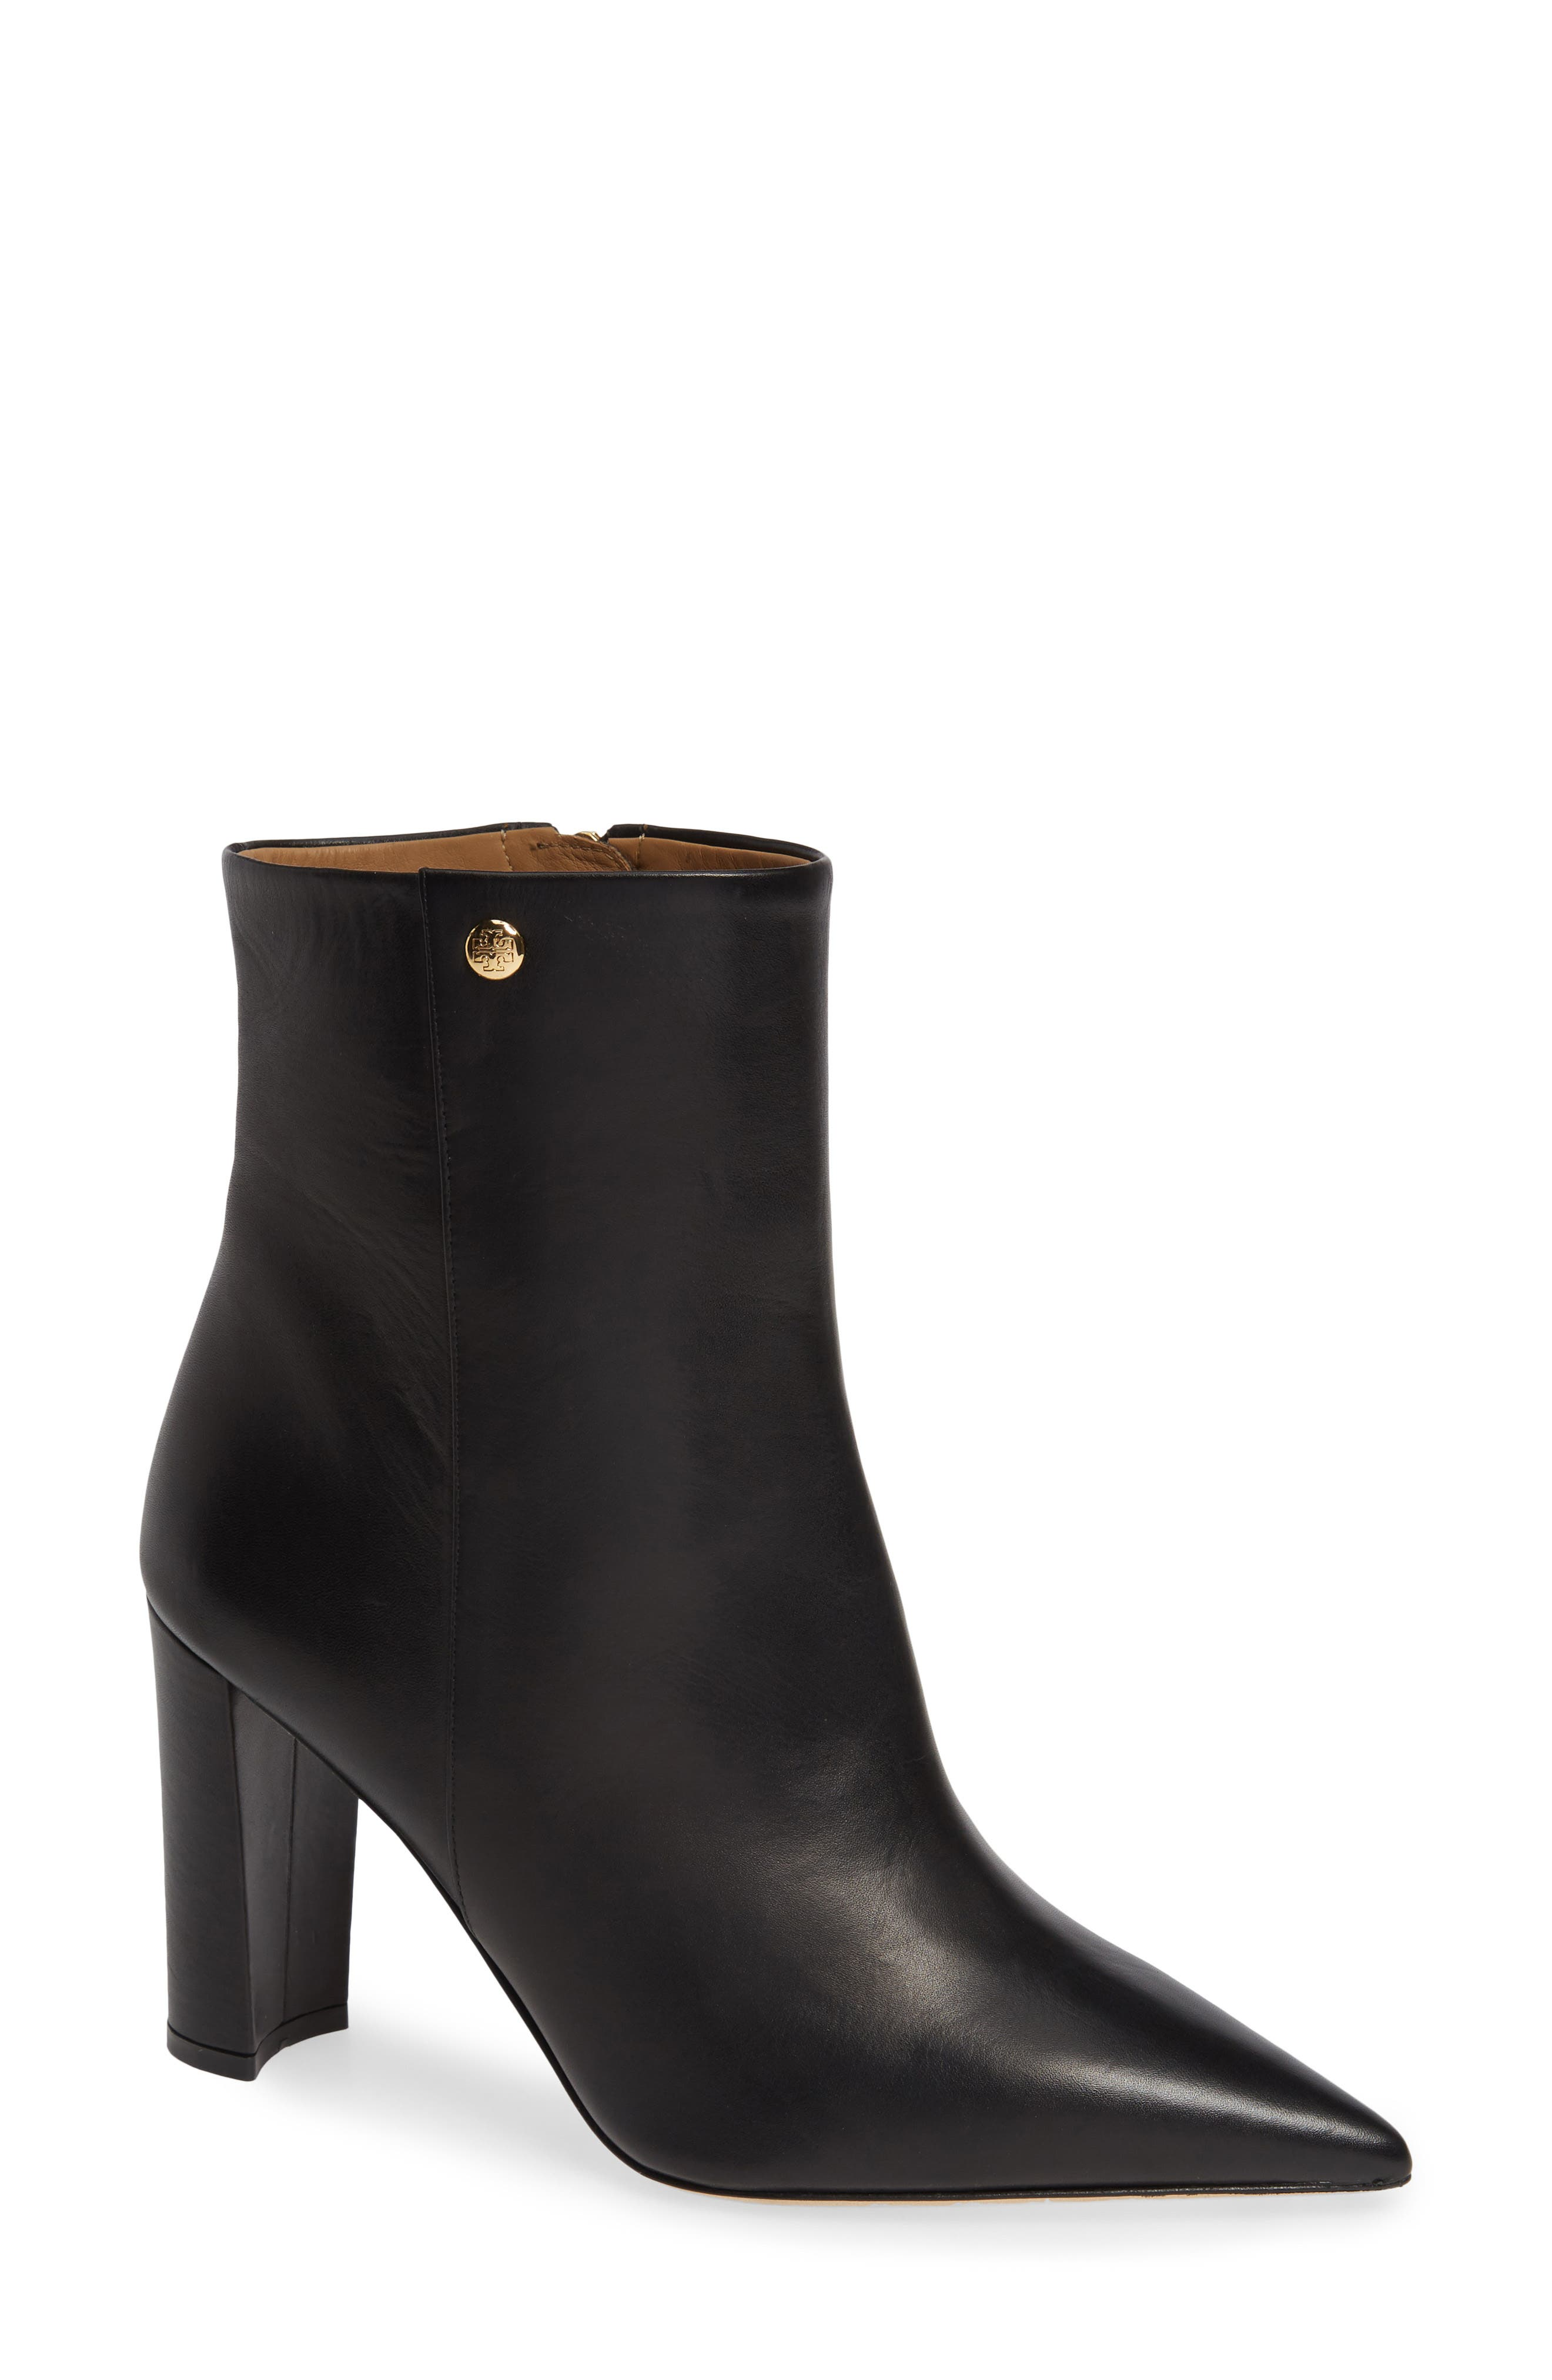 73cc9557e239 Women s Tory Burch Booties   Ankle Boots